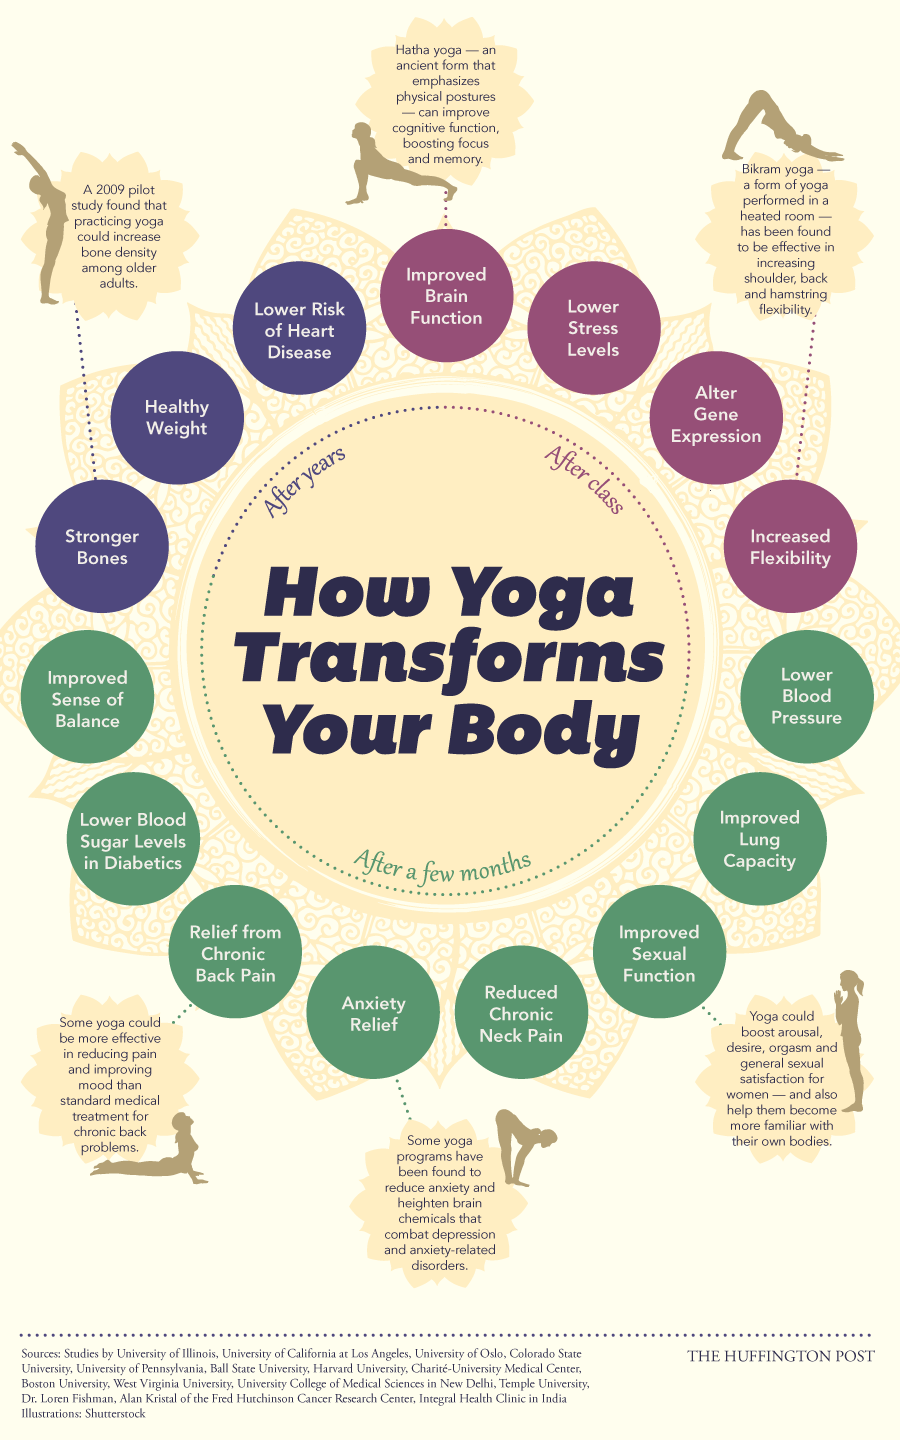 Body-On-Yoga-infographic.png